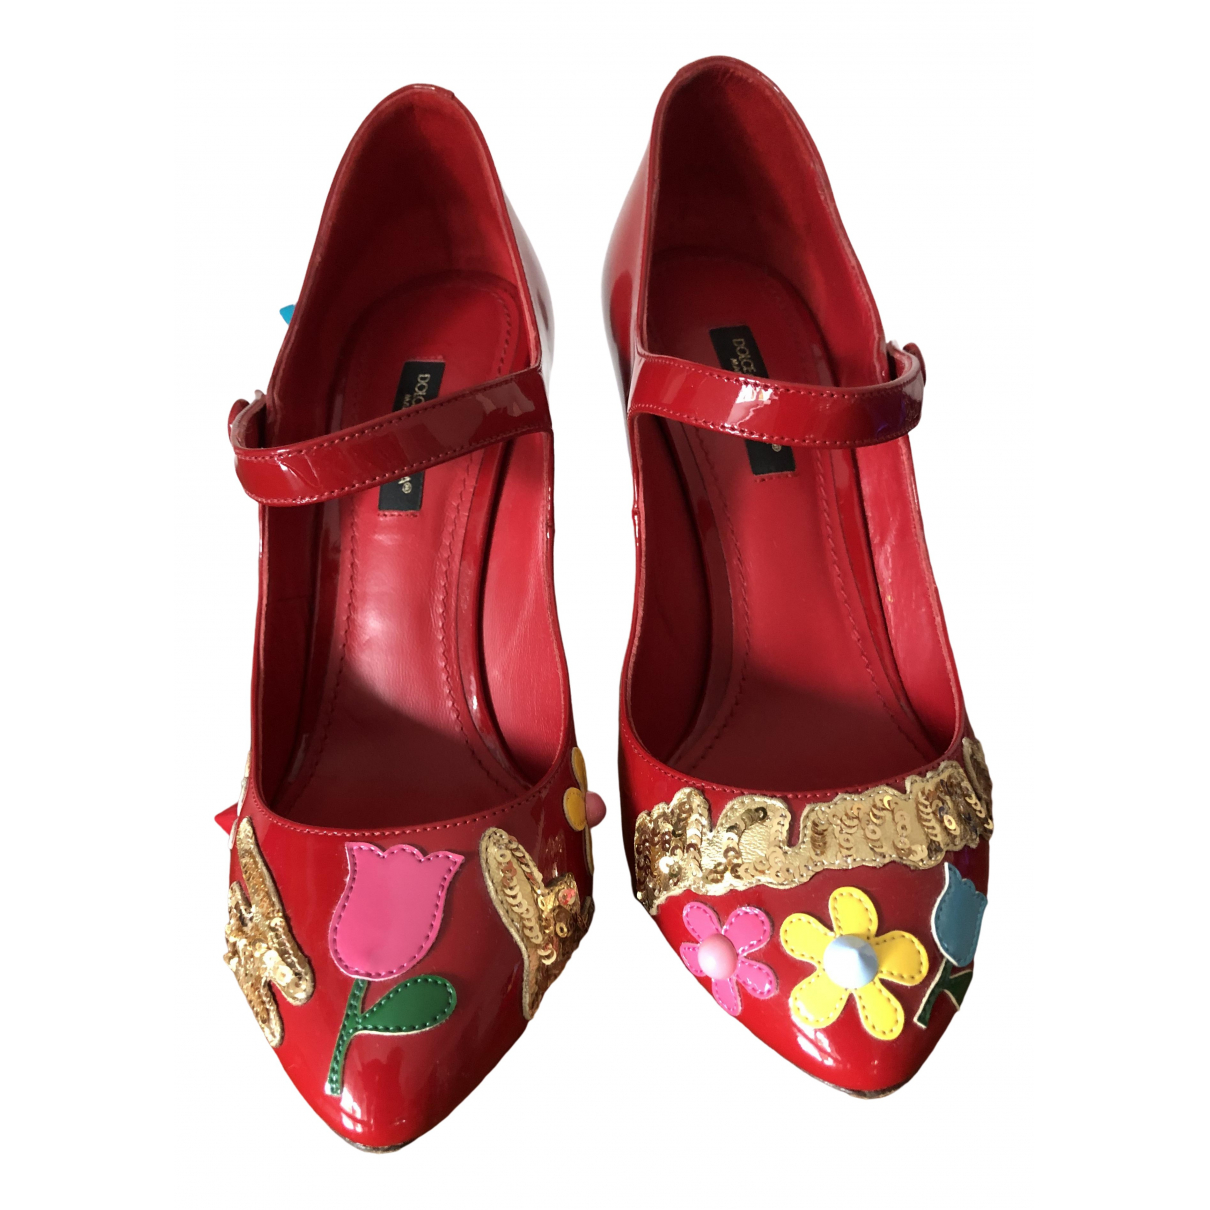 Dolce & Gabbana \N Red Patent leather Heels for Women 36.5 EU